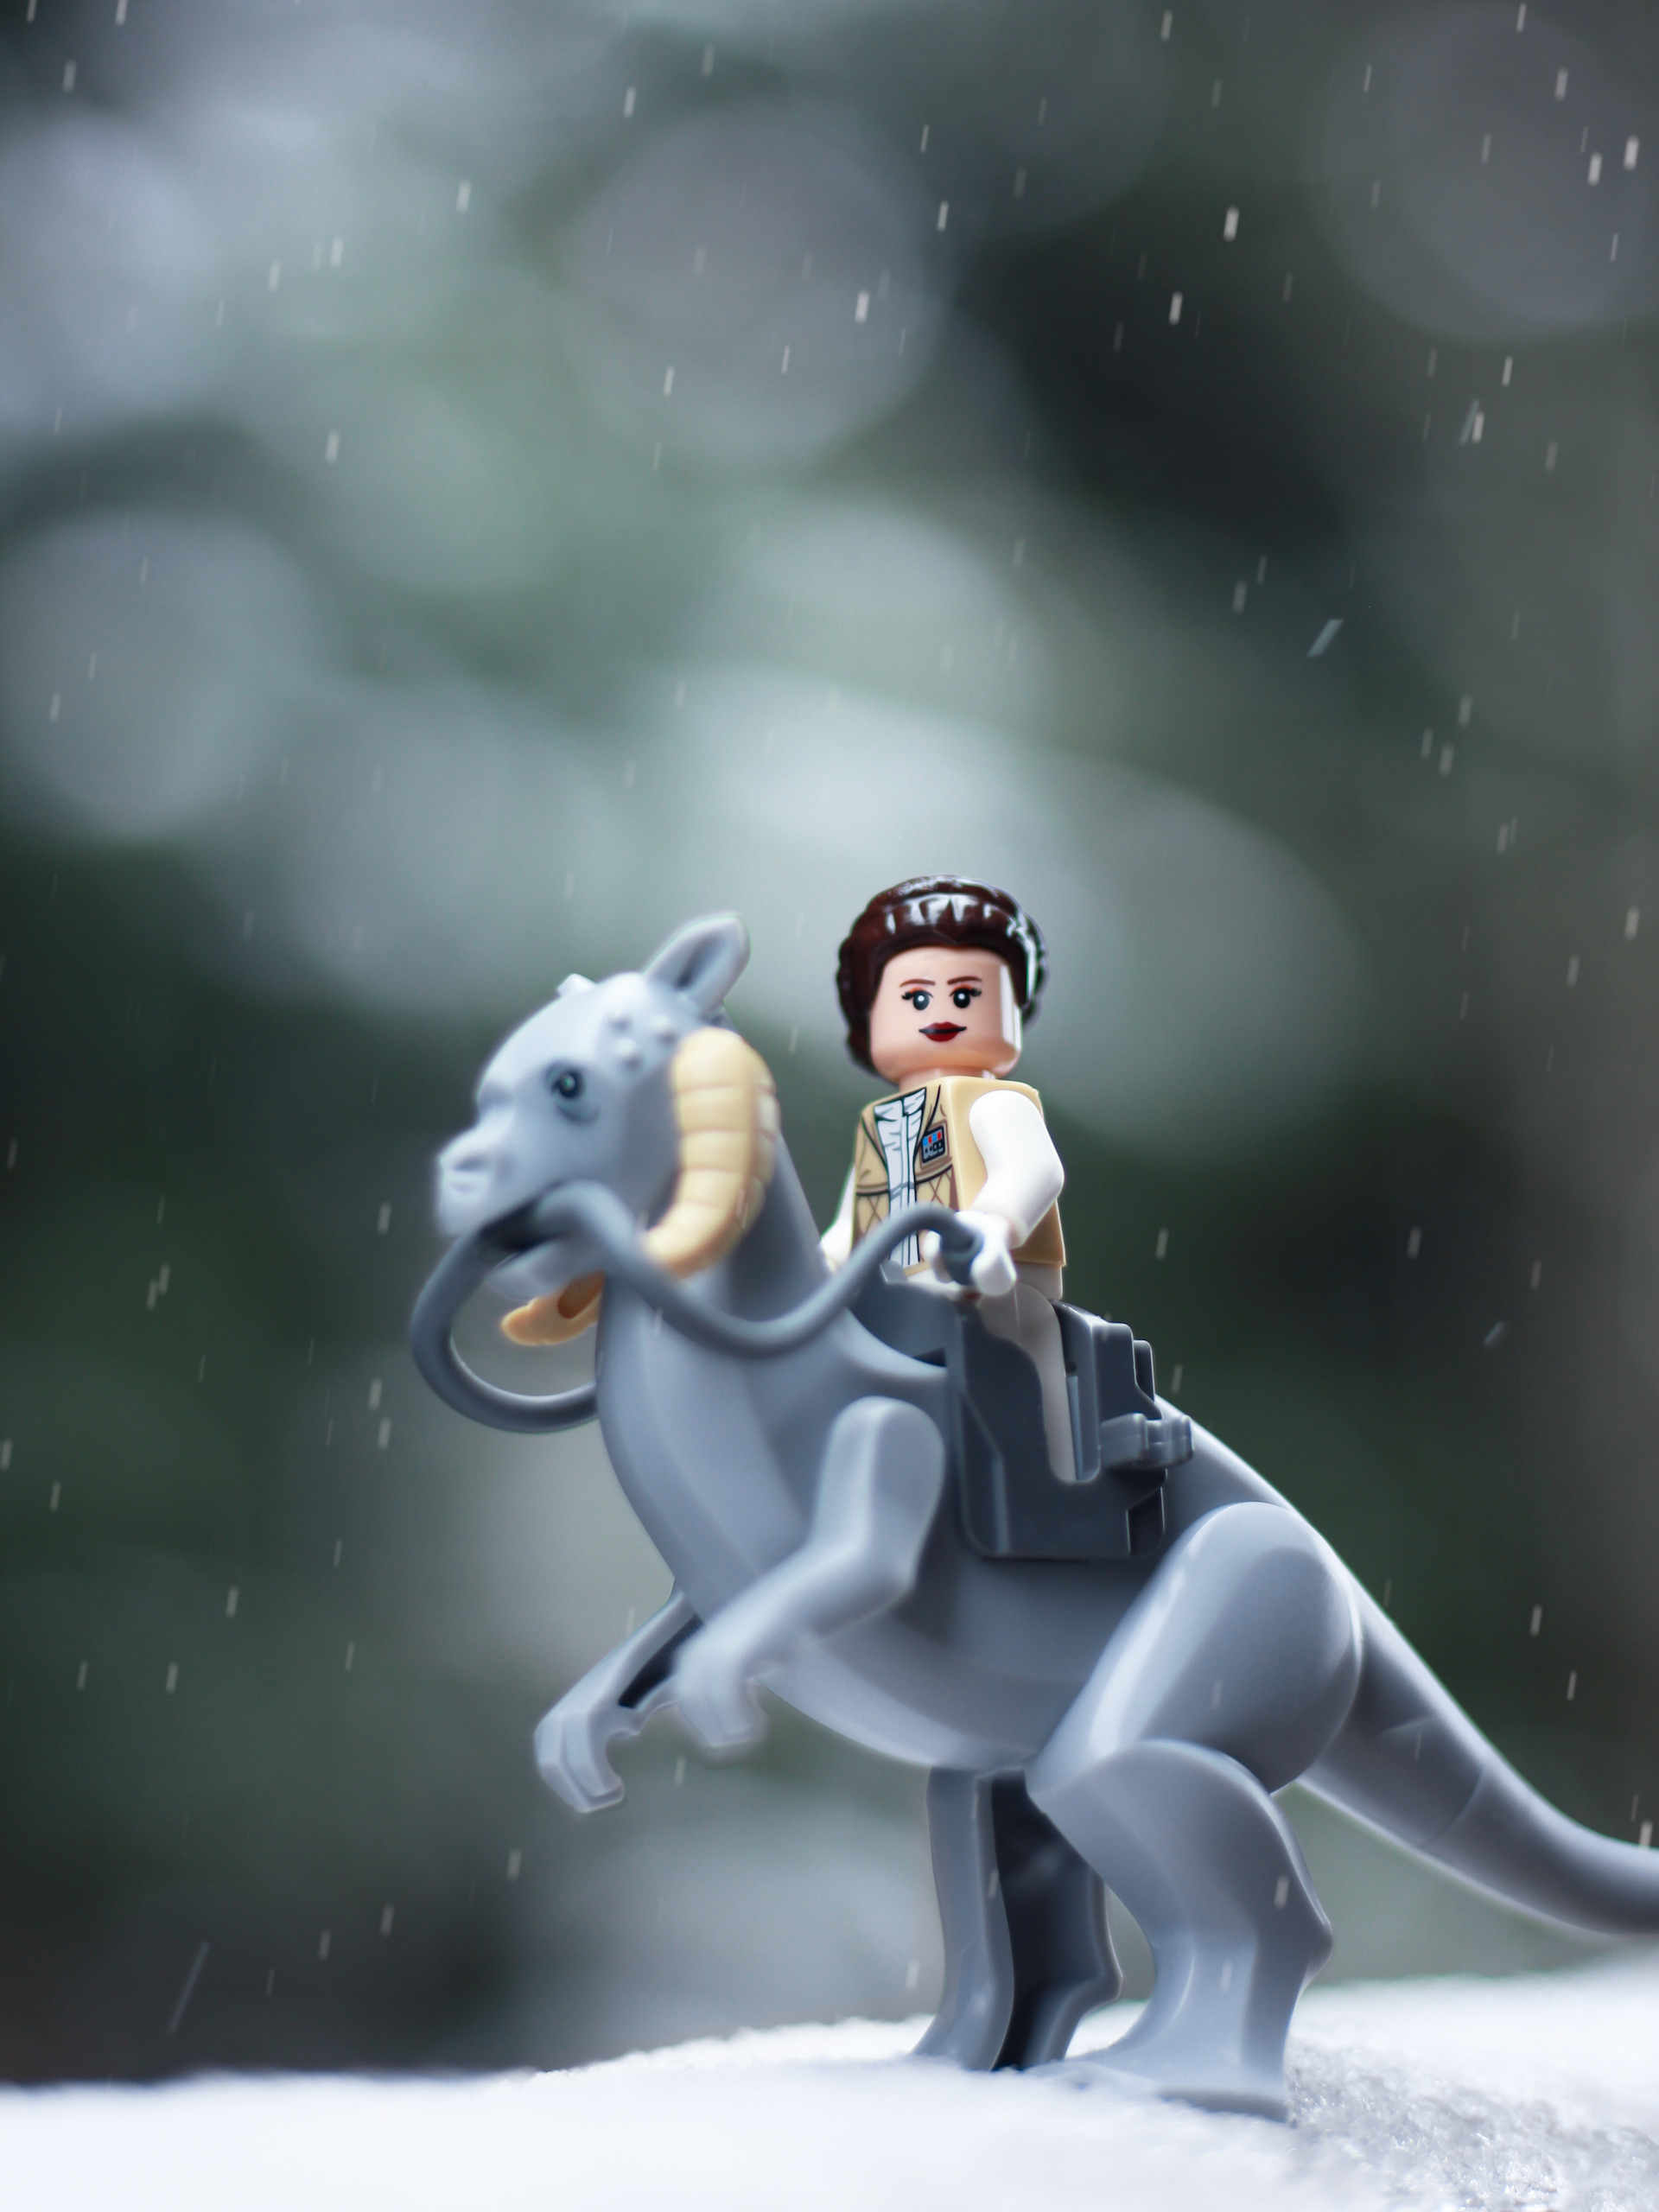 lego star wars princess leia riding a tauntaun in the snow